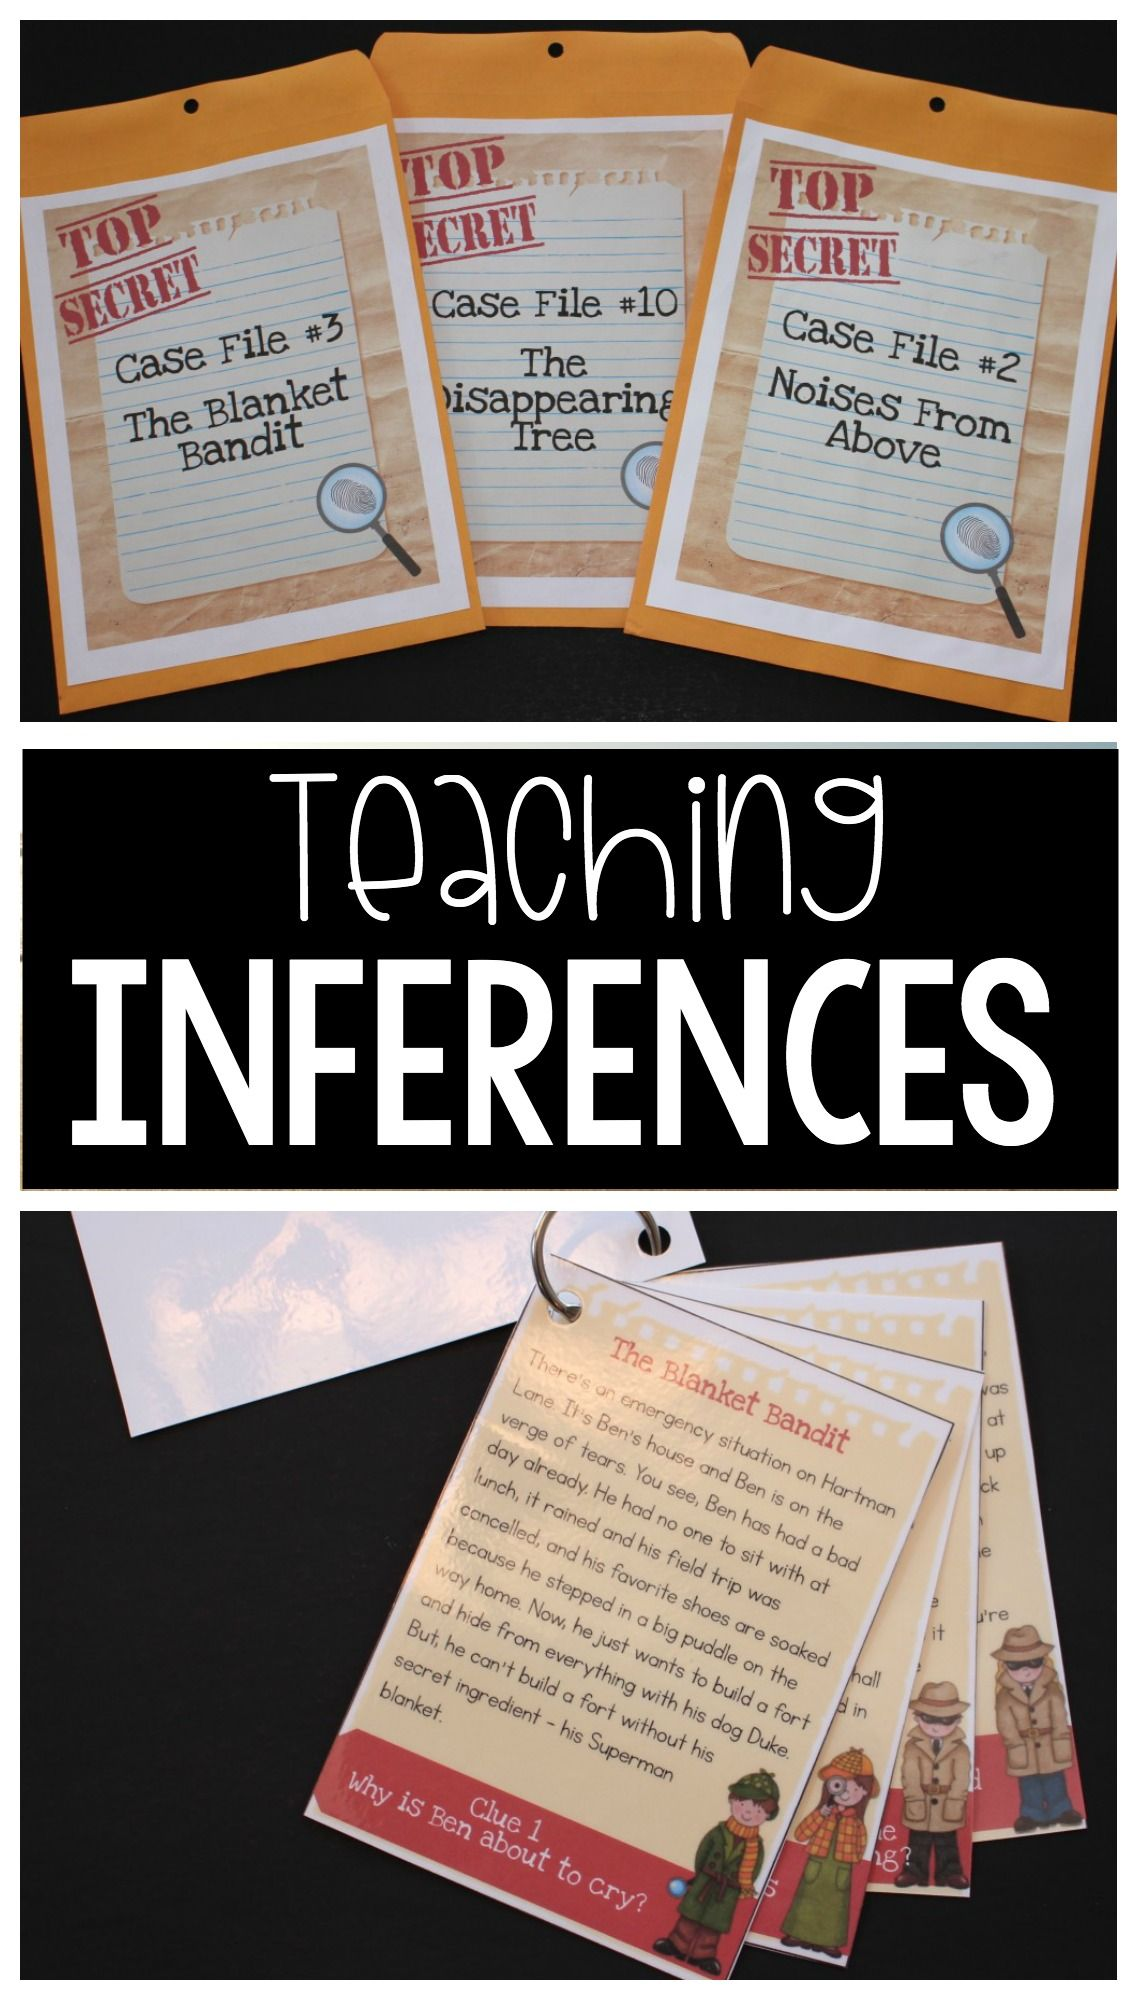 Detective Inferences Drawing Conclusions And Inferences Distance Learning Inference Teaching Reading Passages [ 2000 x 1137 Pixel ]